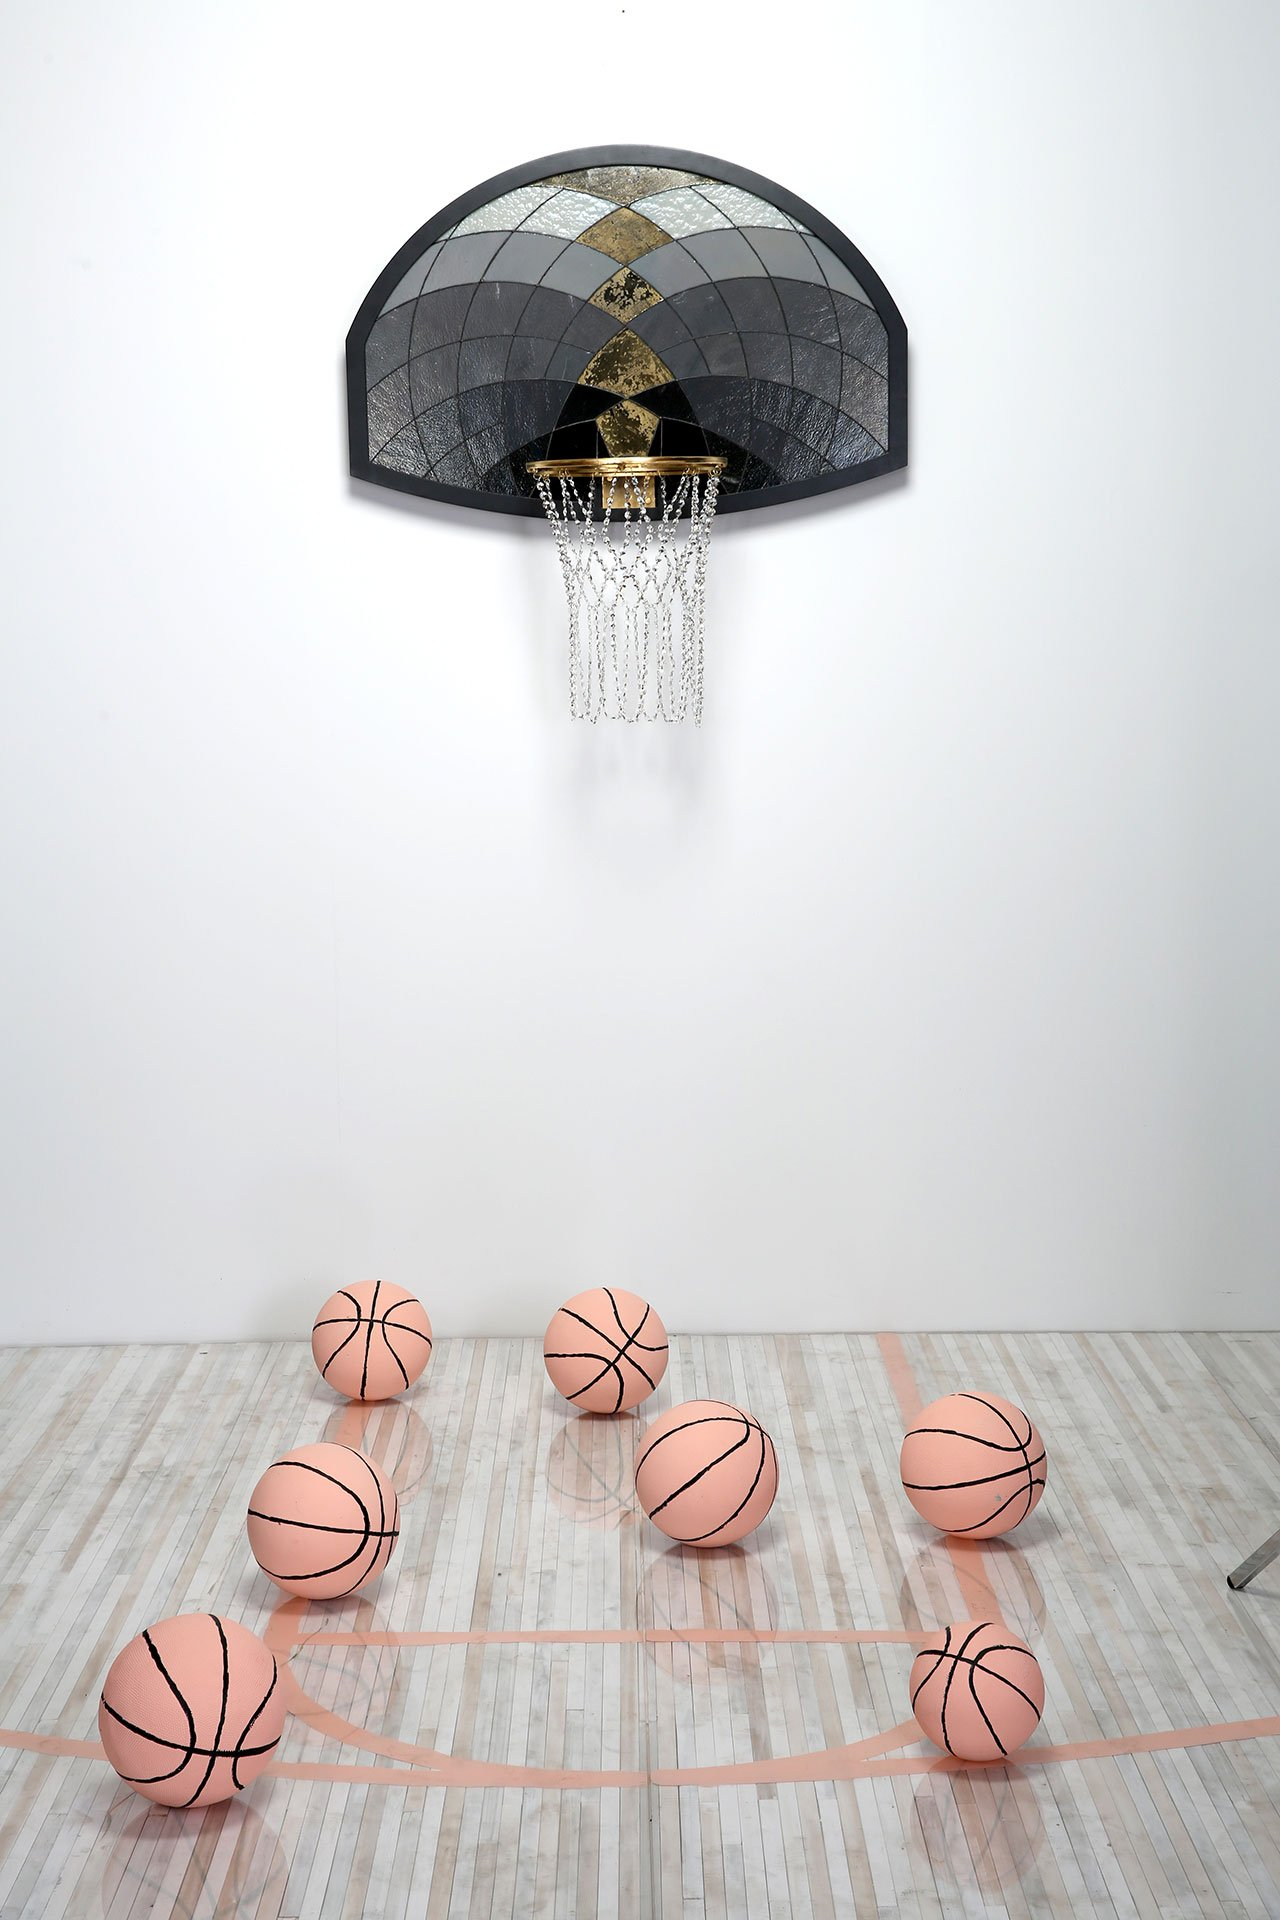 Literally Balling, We Skrong Then, 44 x 40 x 20 in. Glass, mirror, lead, 24k gold-plated high polish steel, wood, Swarovski crystal. Photo courtesy Victor Solomon.